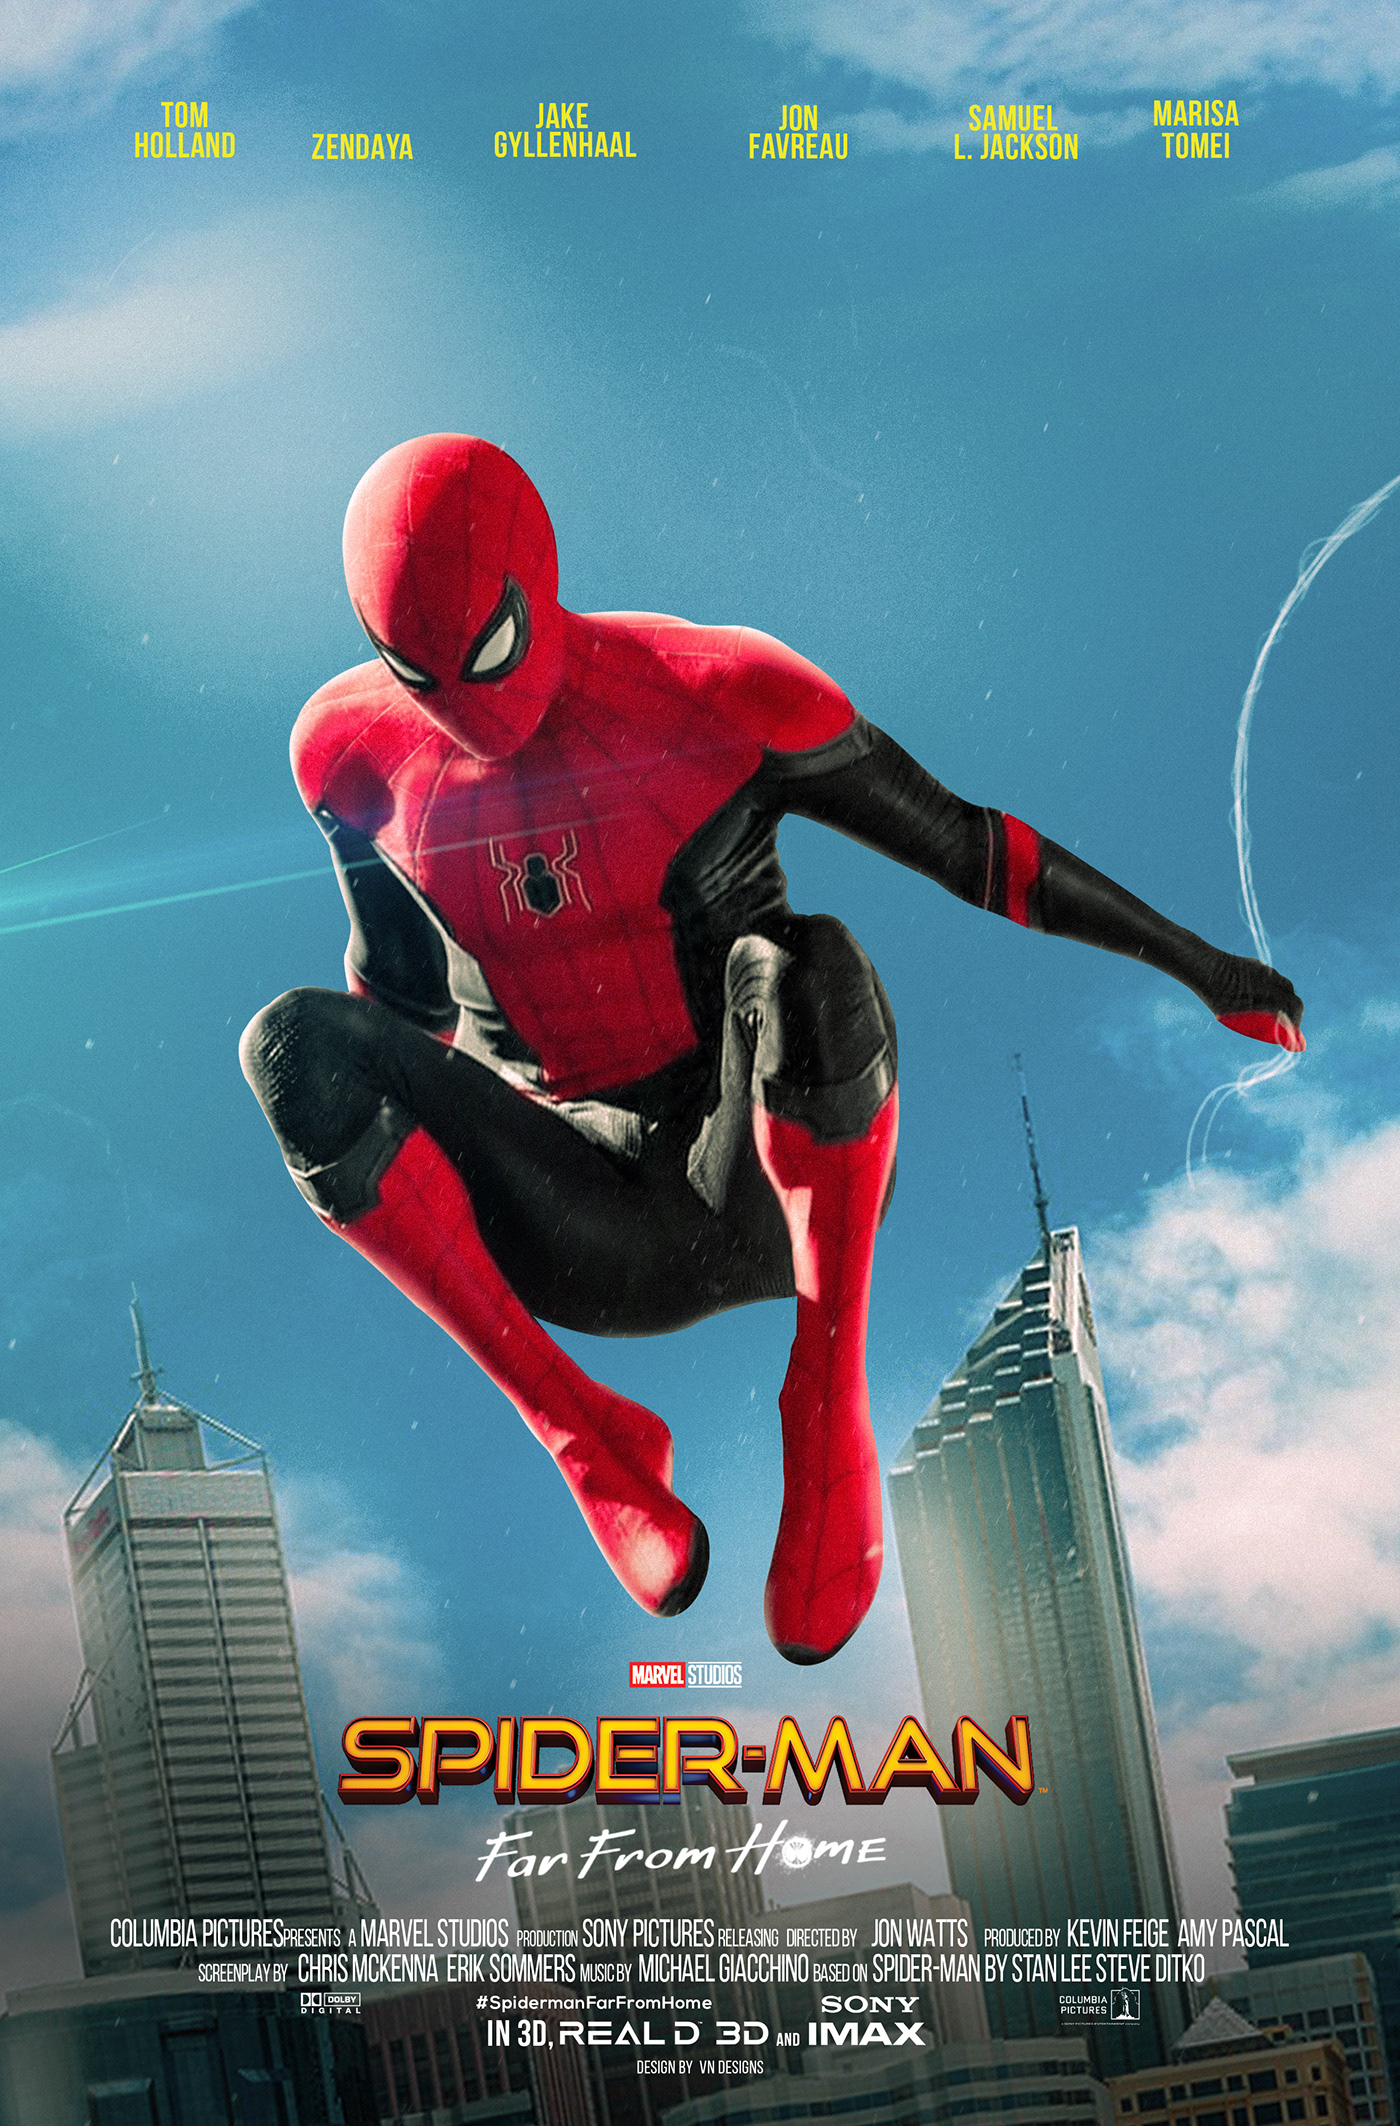 Spiderman: Far From Home | Poster Designs on Behance